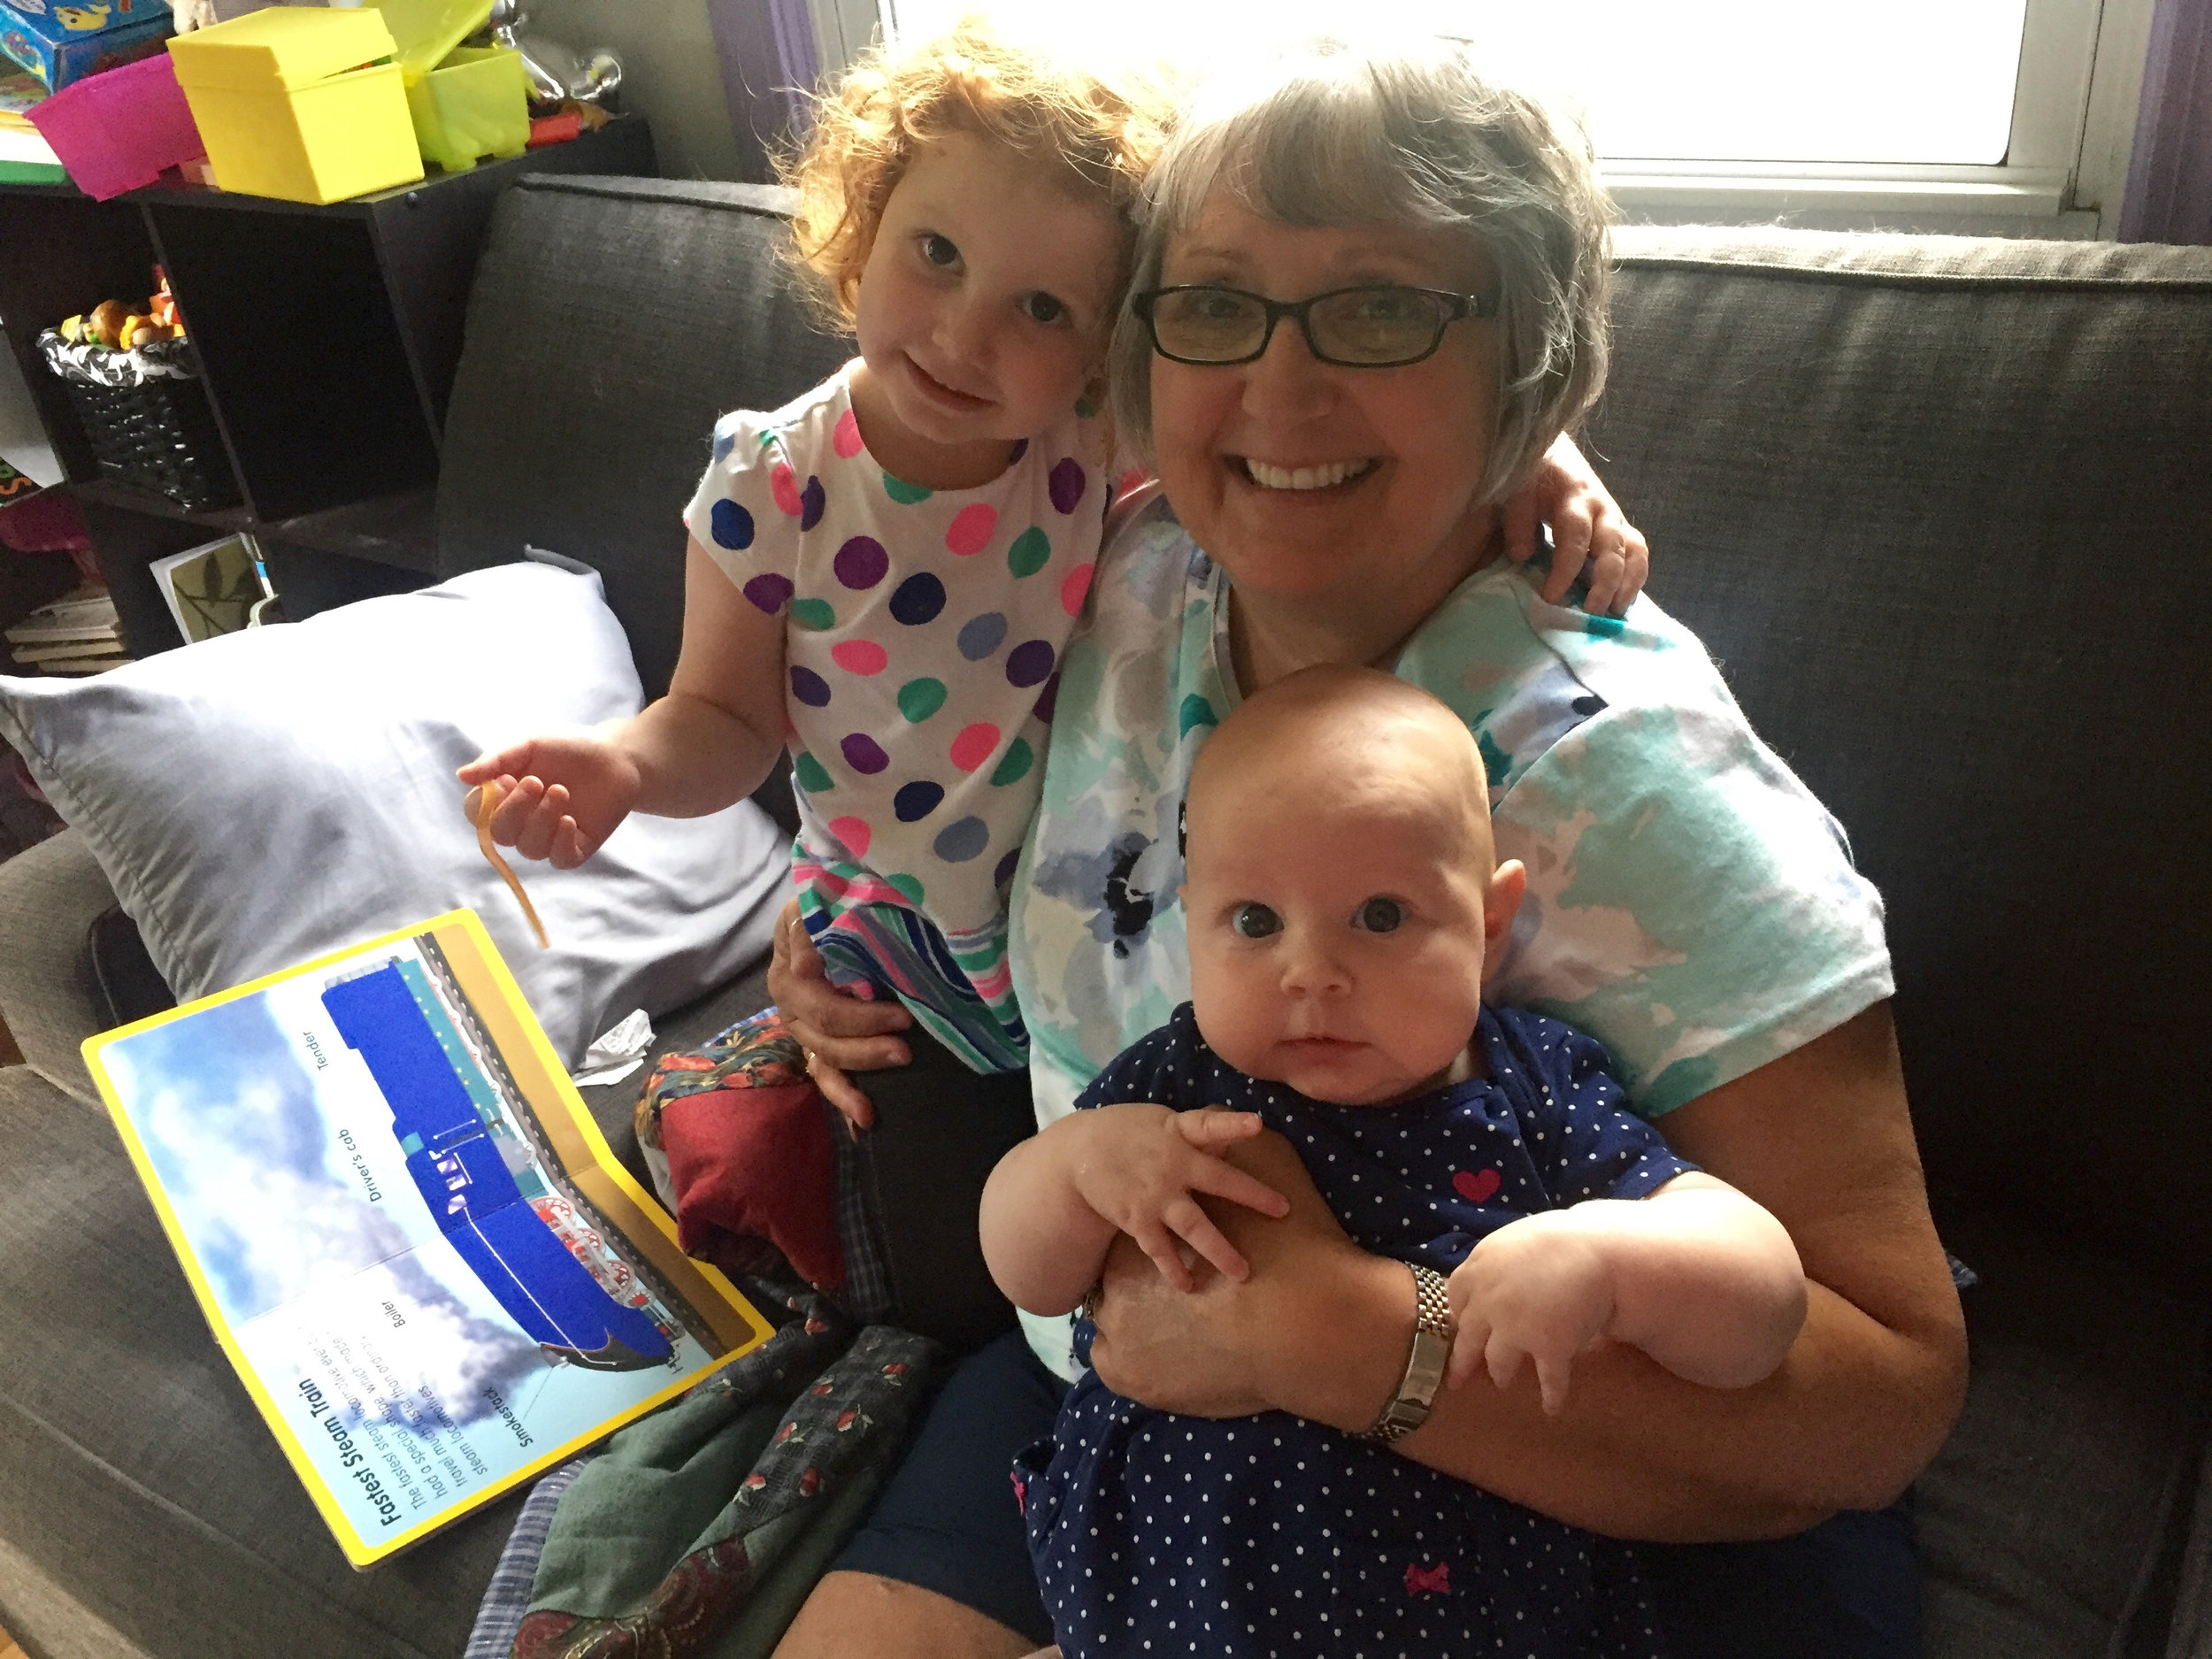 Make a Legacy Donation … - As you plan for future giving, include Good Beginnings in your planned giving estate.Change the amount at any time; no gift is too small. The Upper Valley community will always need to ensure babies and families are secure.Choose to make your gift anonymous or honor a loved one in name.Good Beginnings is a 501c3; tax ID number: 22-3096726Business ID: 692661NH registration # 4577Mailing Address: PO Box 5054; West Lebanon, NH; 03784